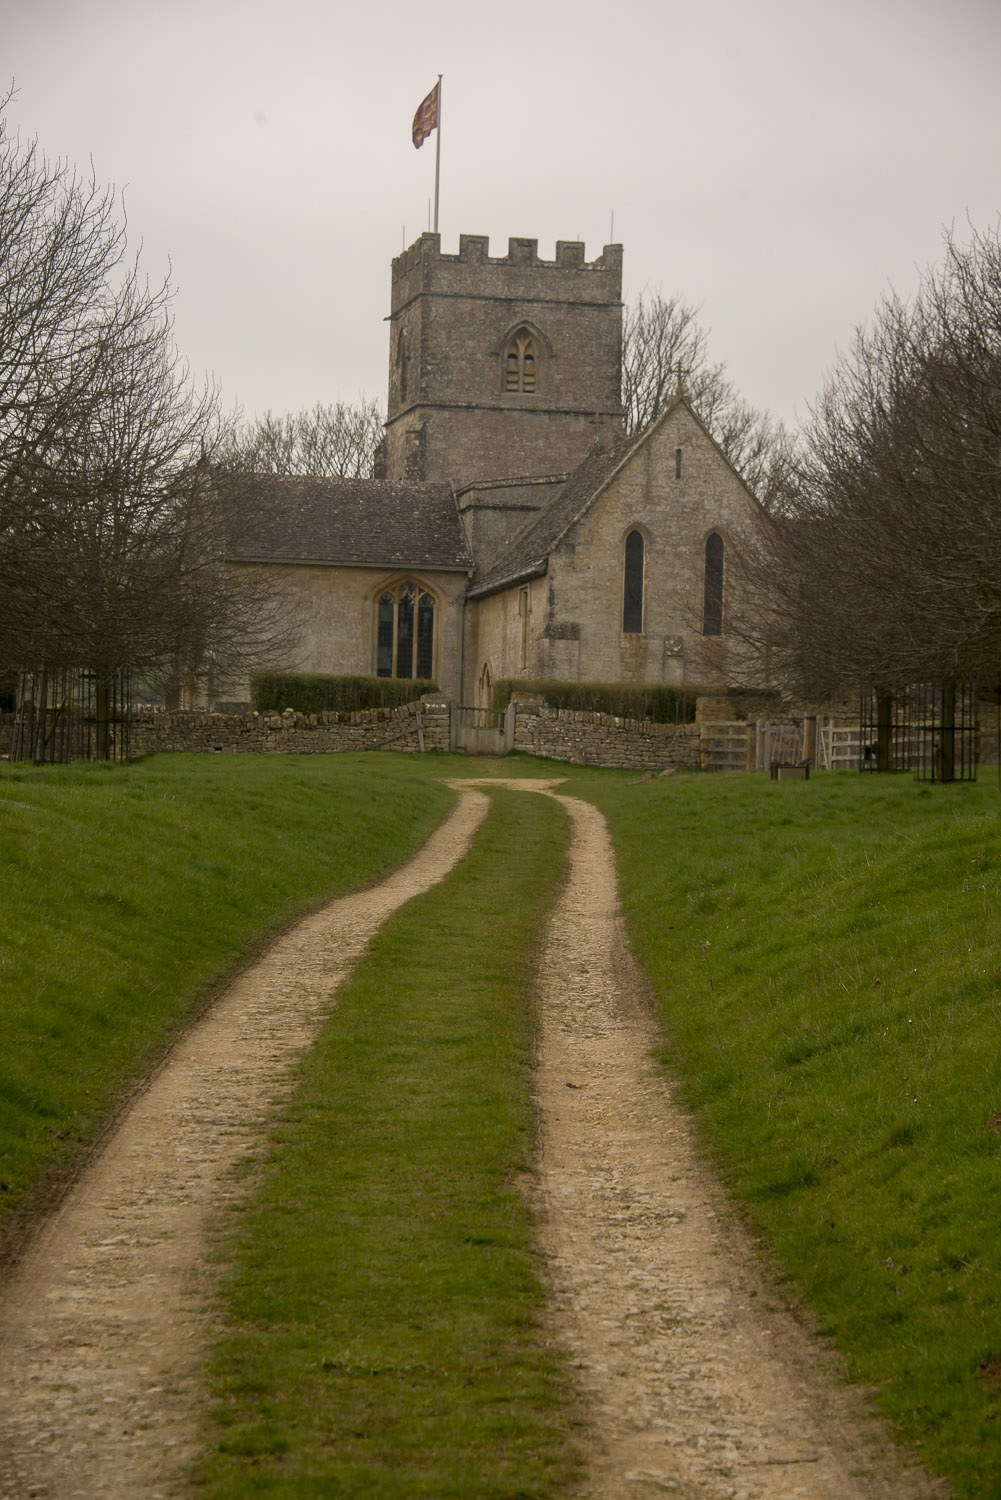 Guiting-Power-church-Gloucestershire-Jo-Kearney-photos-landscape-photography-video-landscapes.jpg